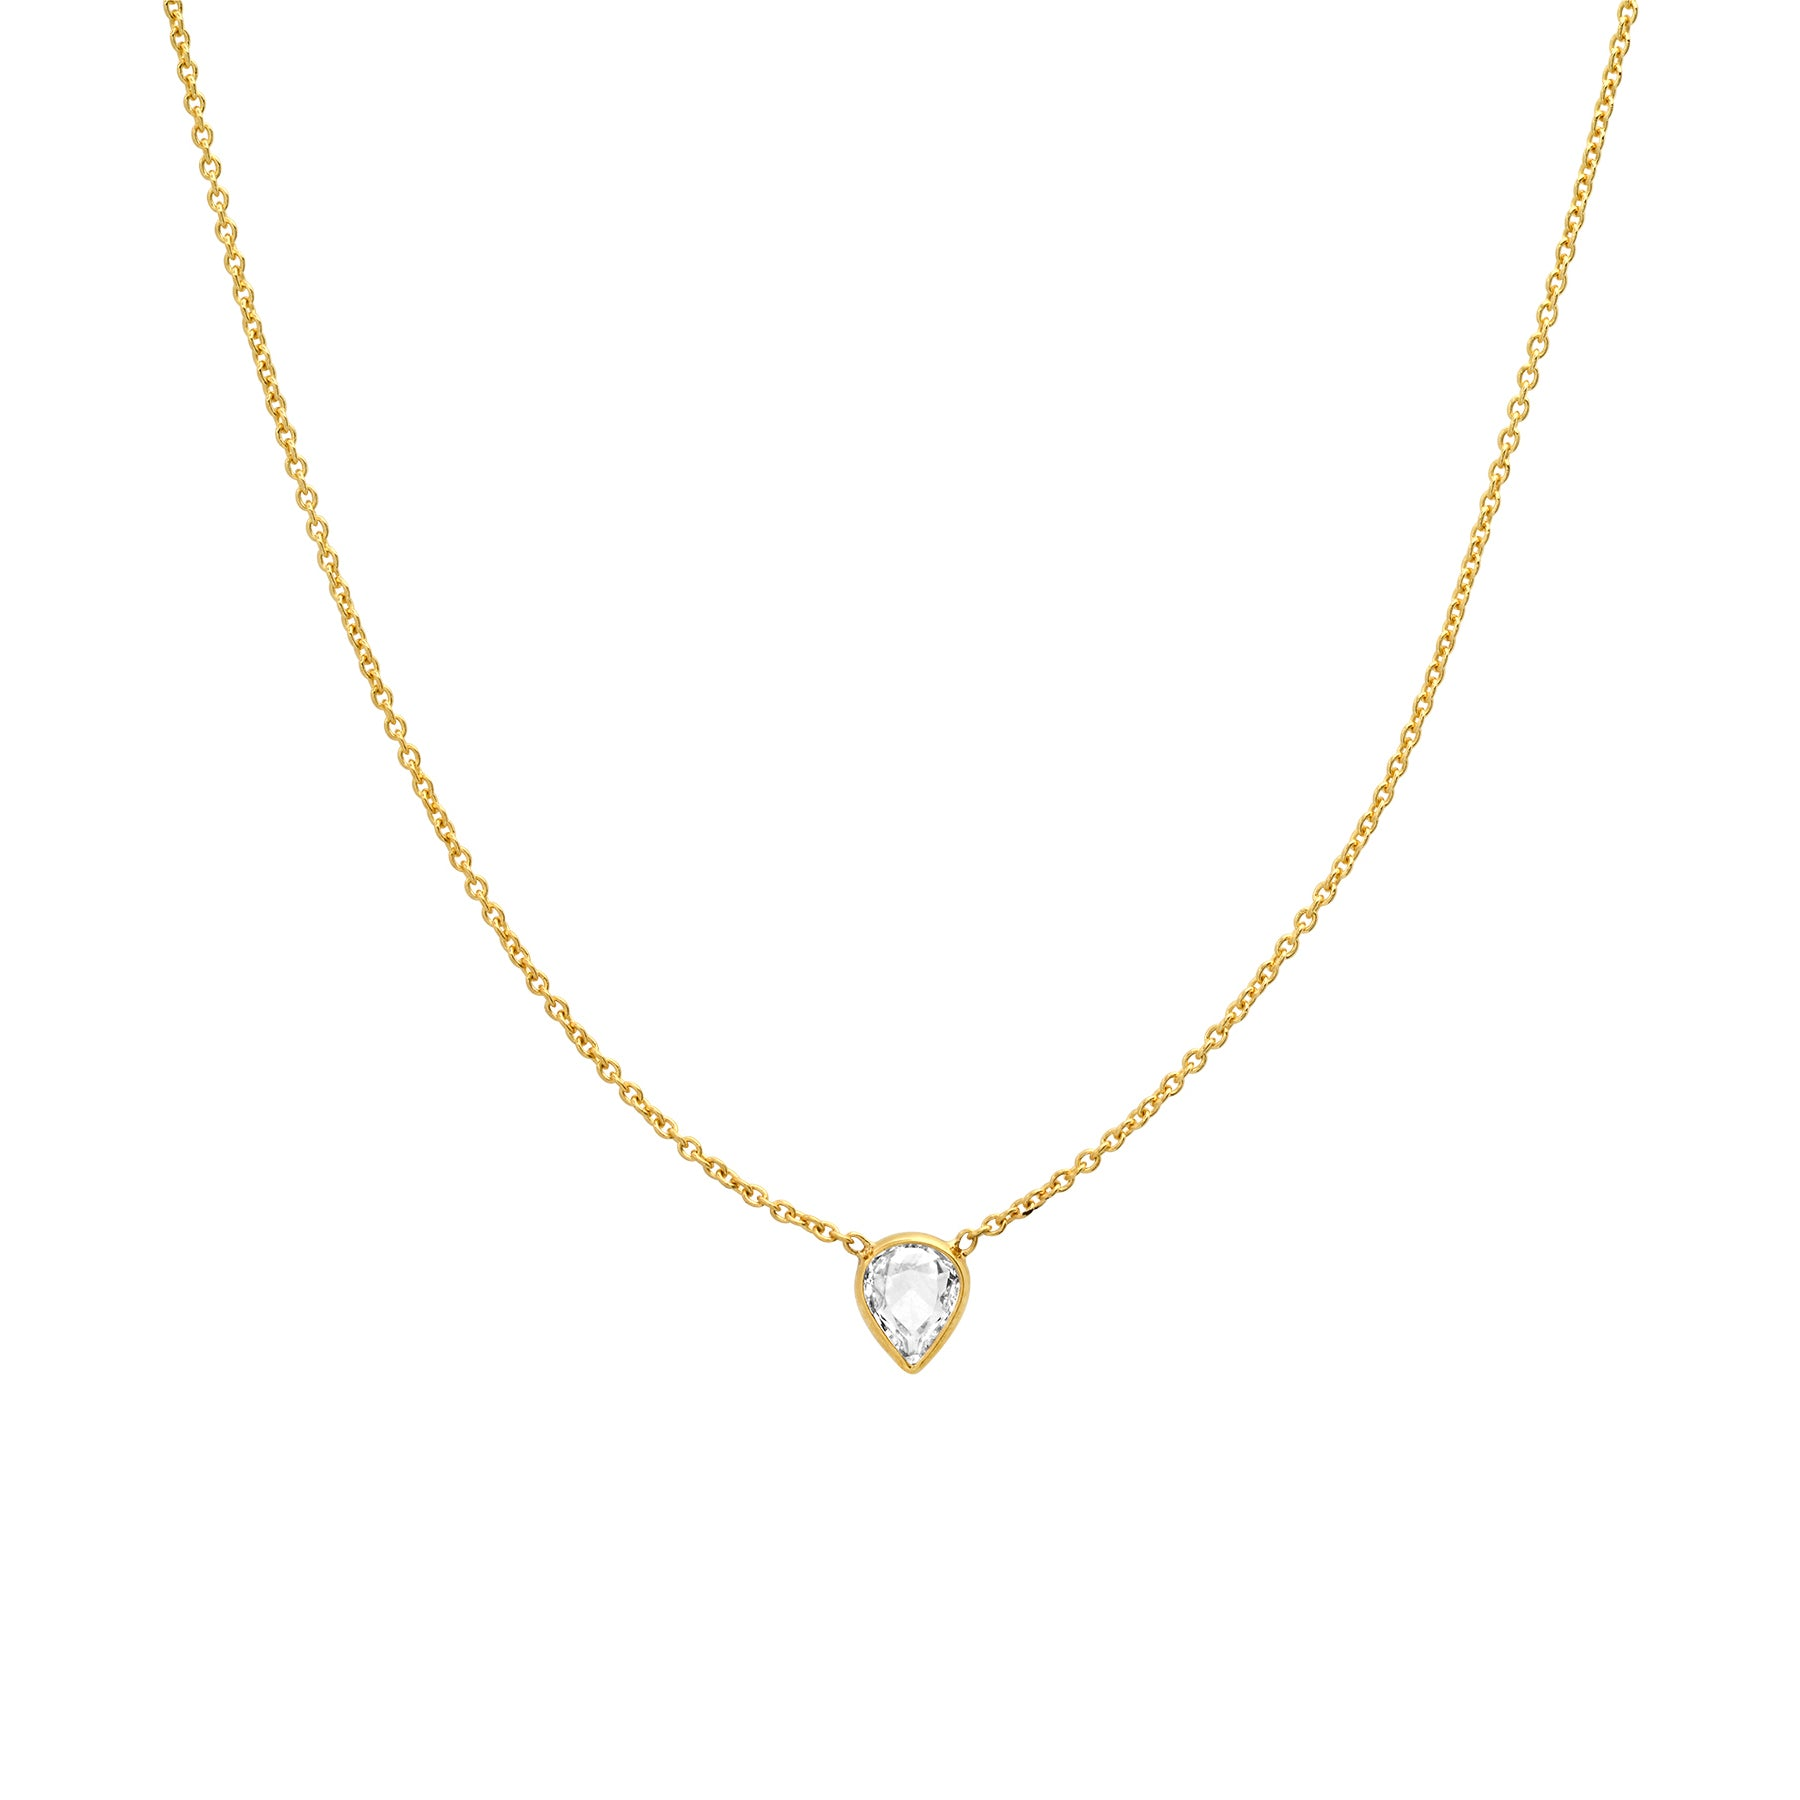 Rose Cut Diamond Necklace No. 49